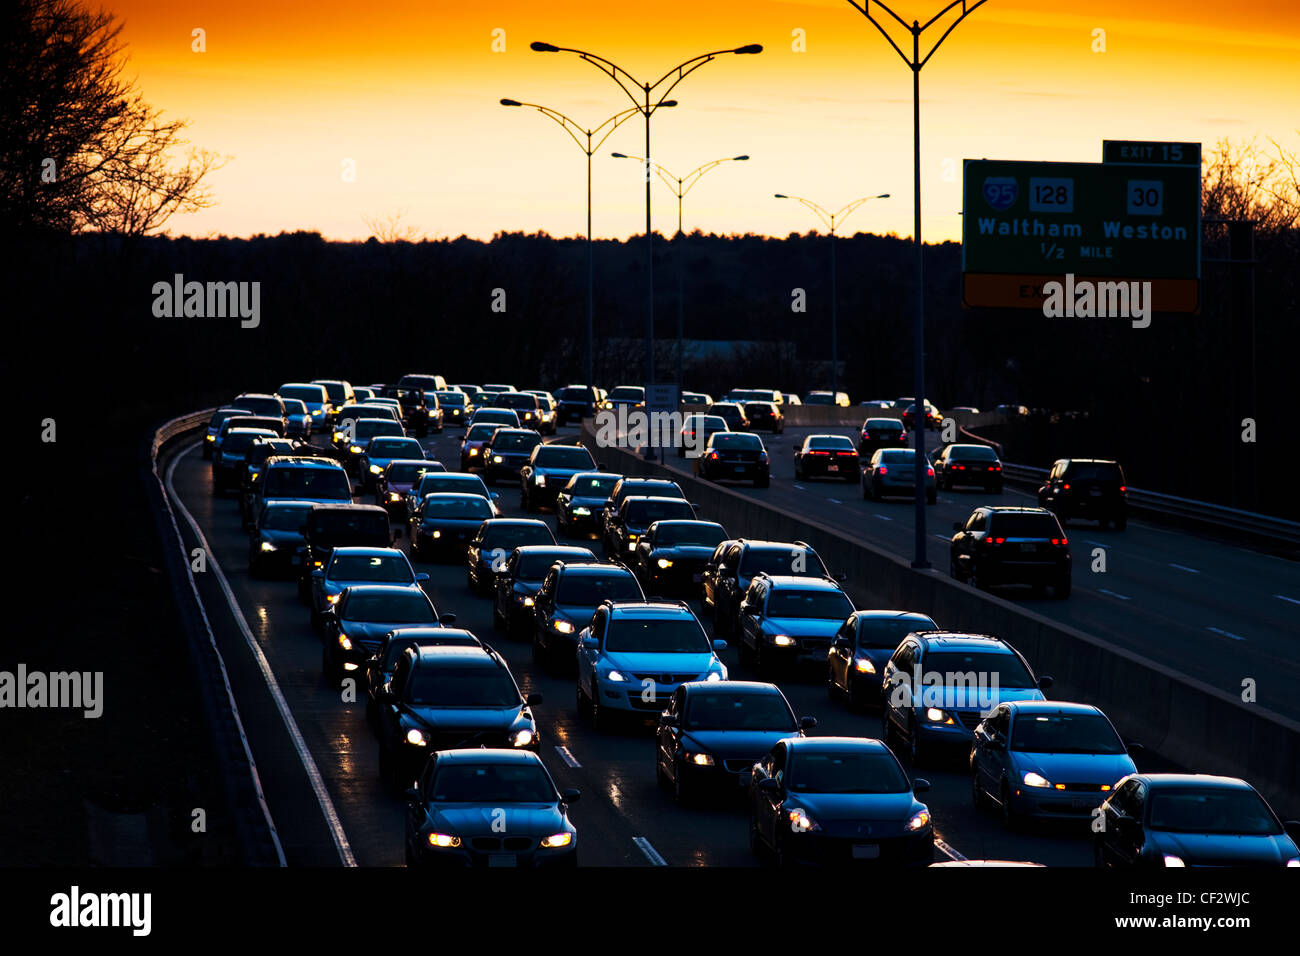 Traffic jam at sunset during the evening commute - Stock Image